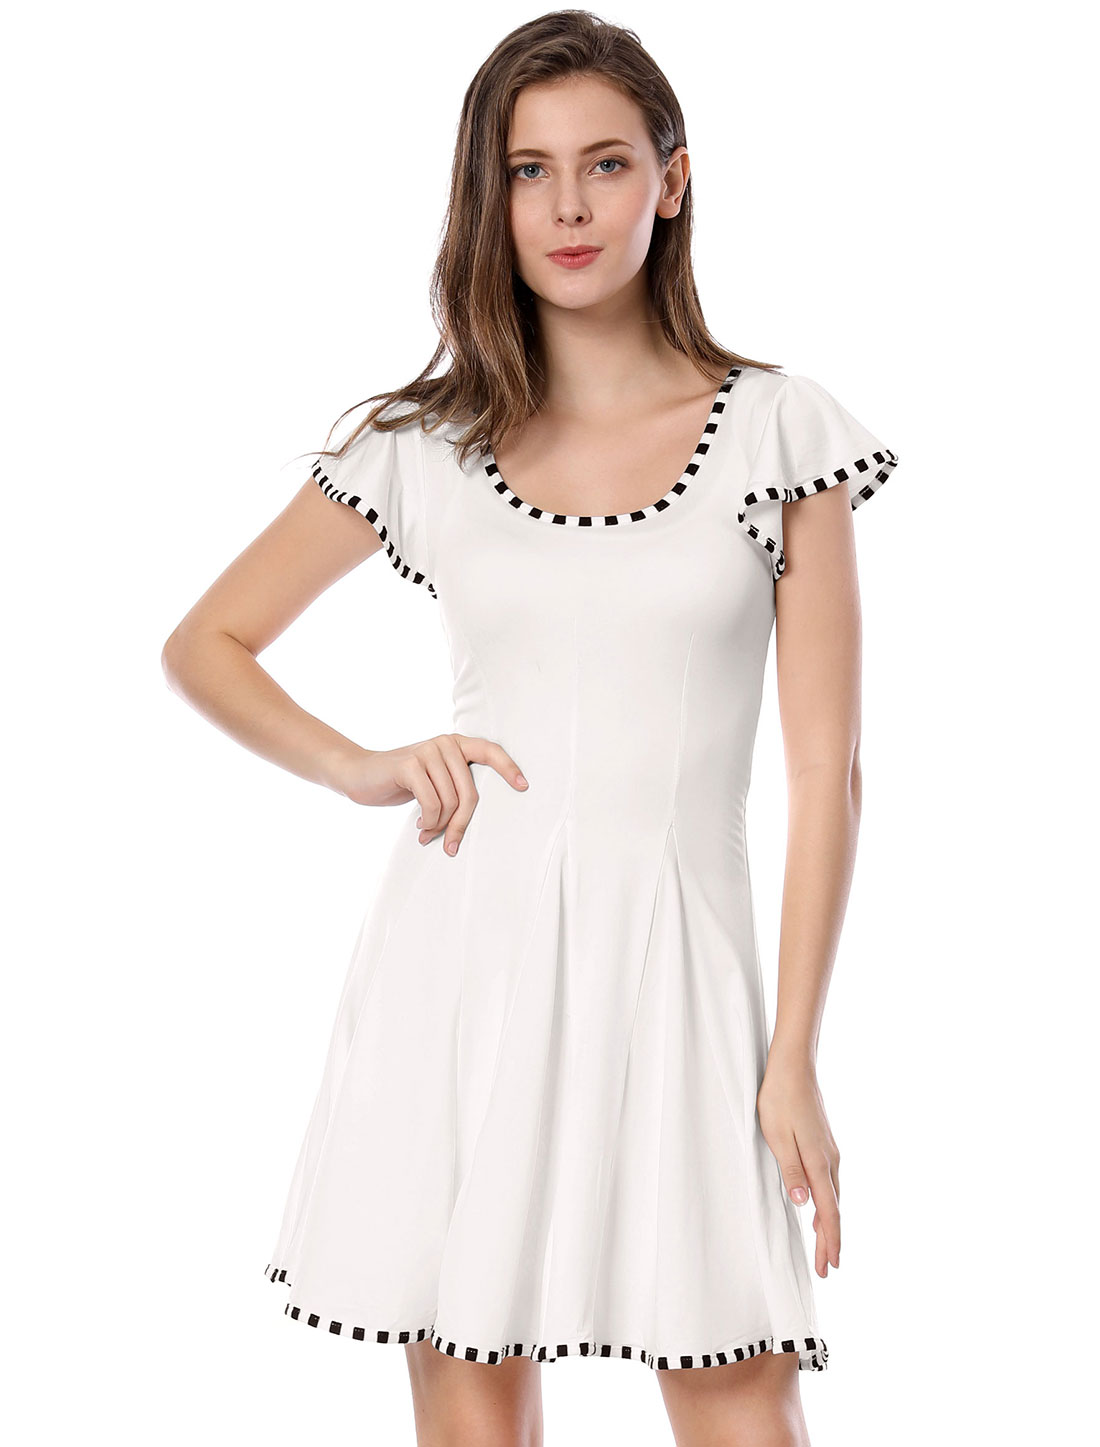 Pullover Stretchy Scoop Neck Ruffled Sleeve White Mini Dress for Lady XL